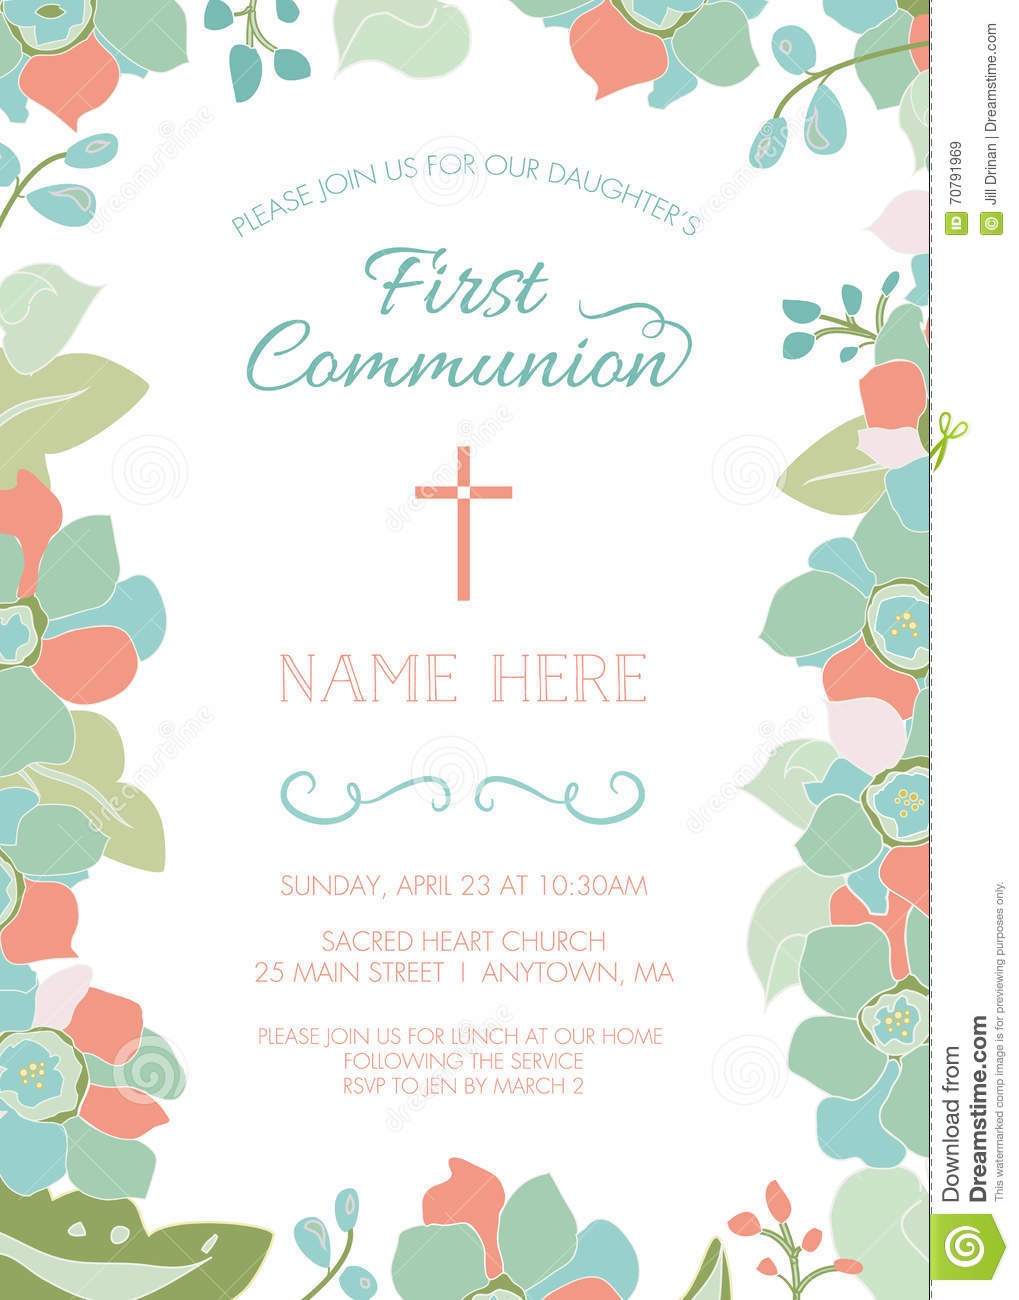 First Communion Baptism Christening Invitation Template With